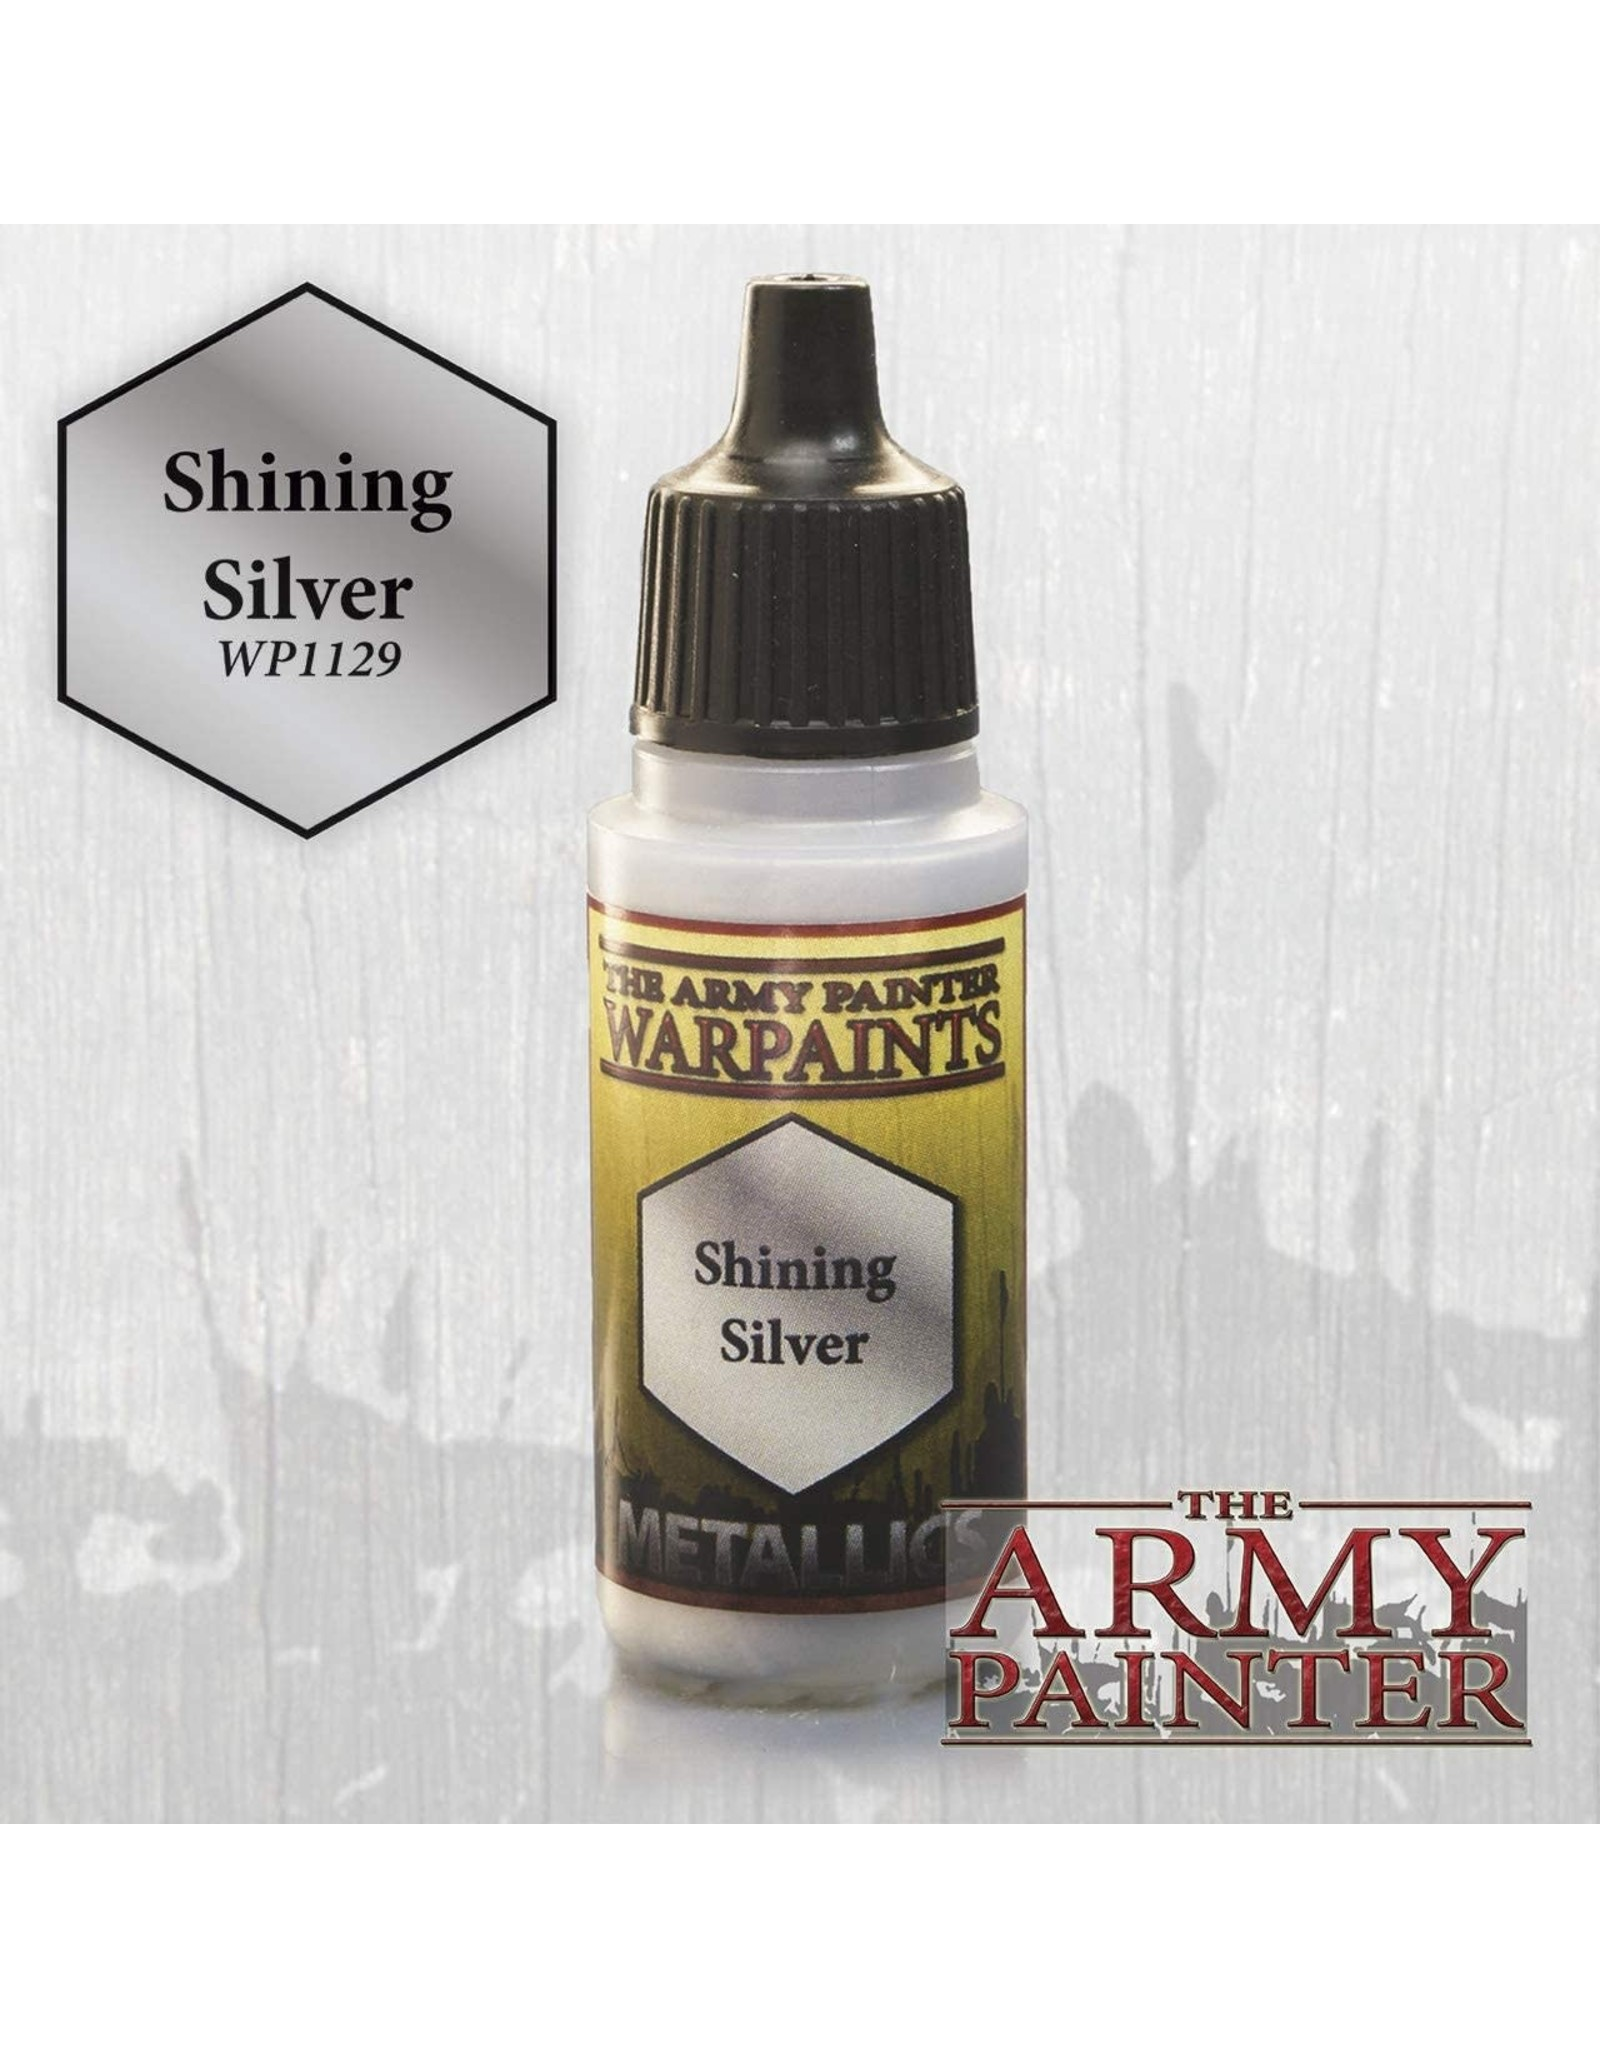 THE ARMY PAINTER ARMY PAINTER WARPAINTS SHINING SILVER